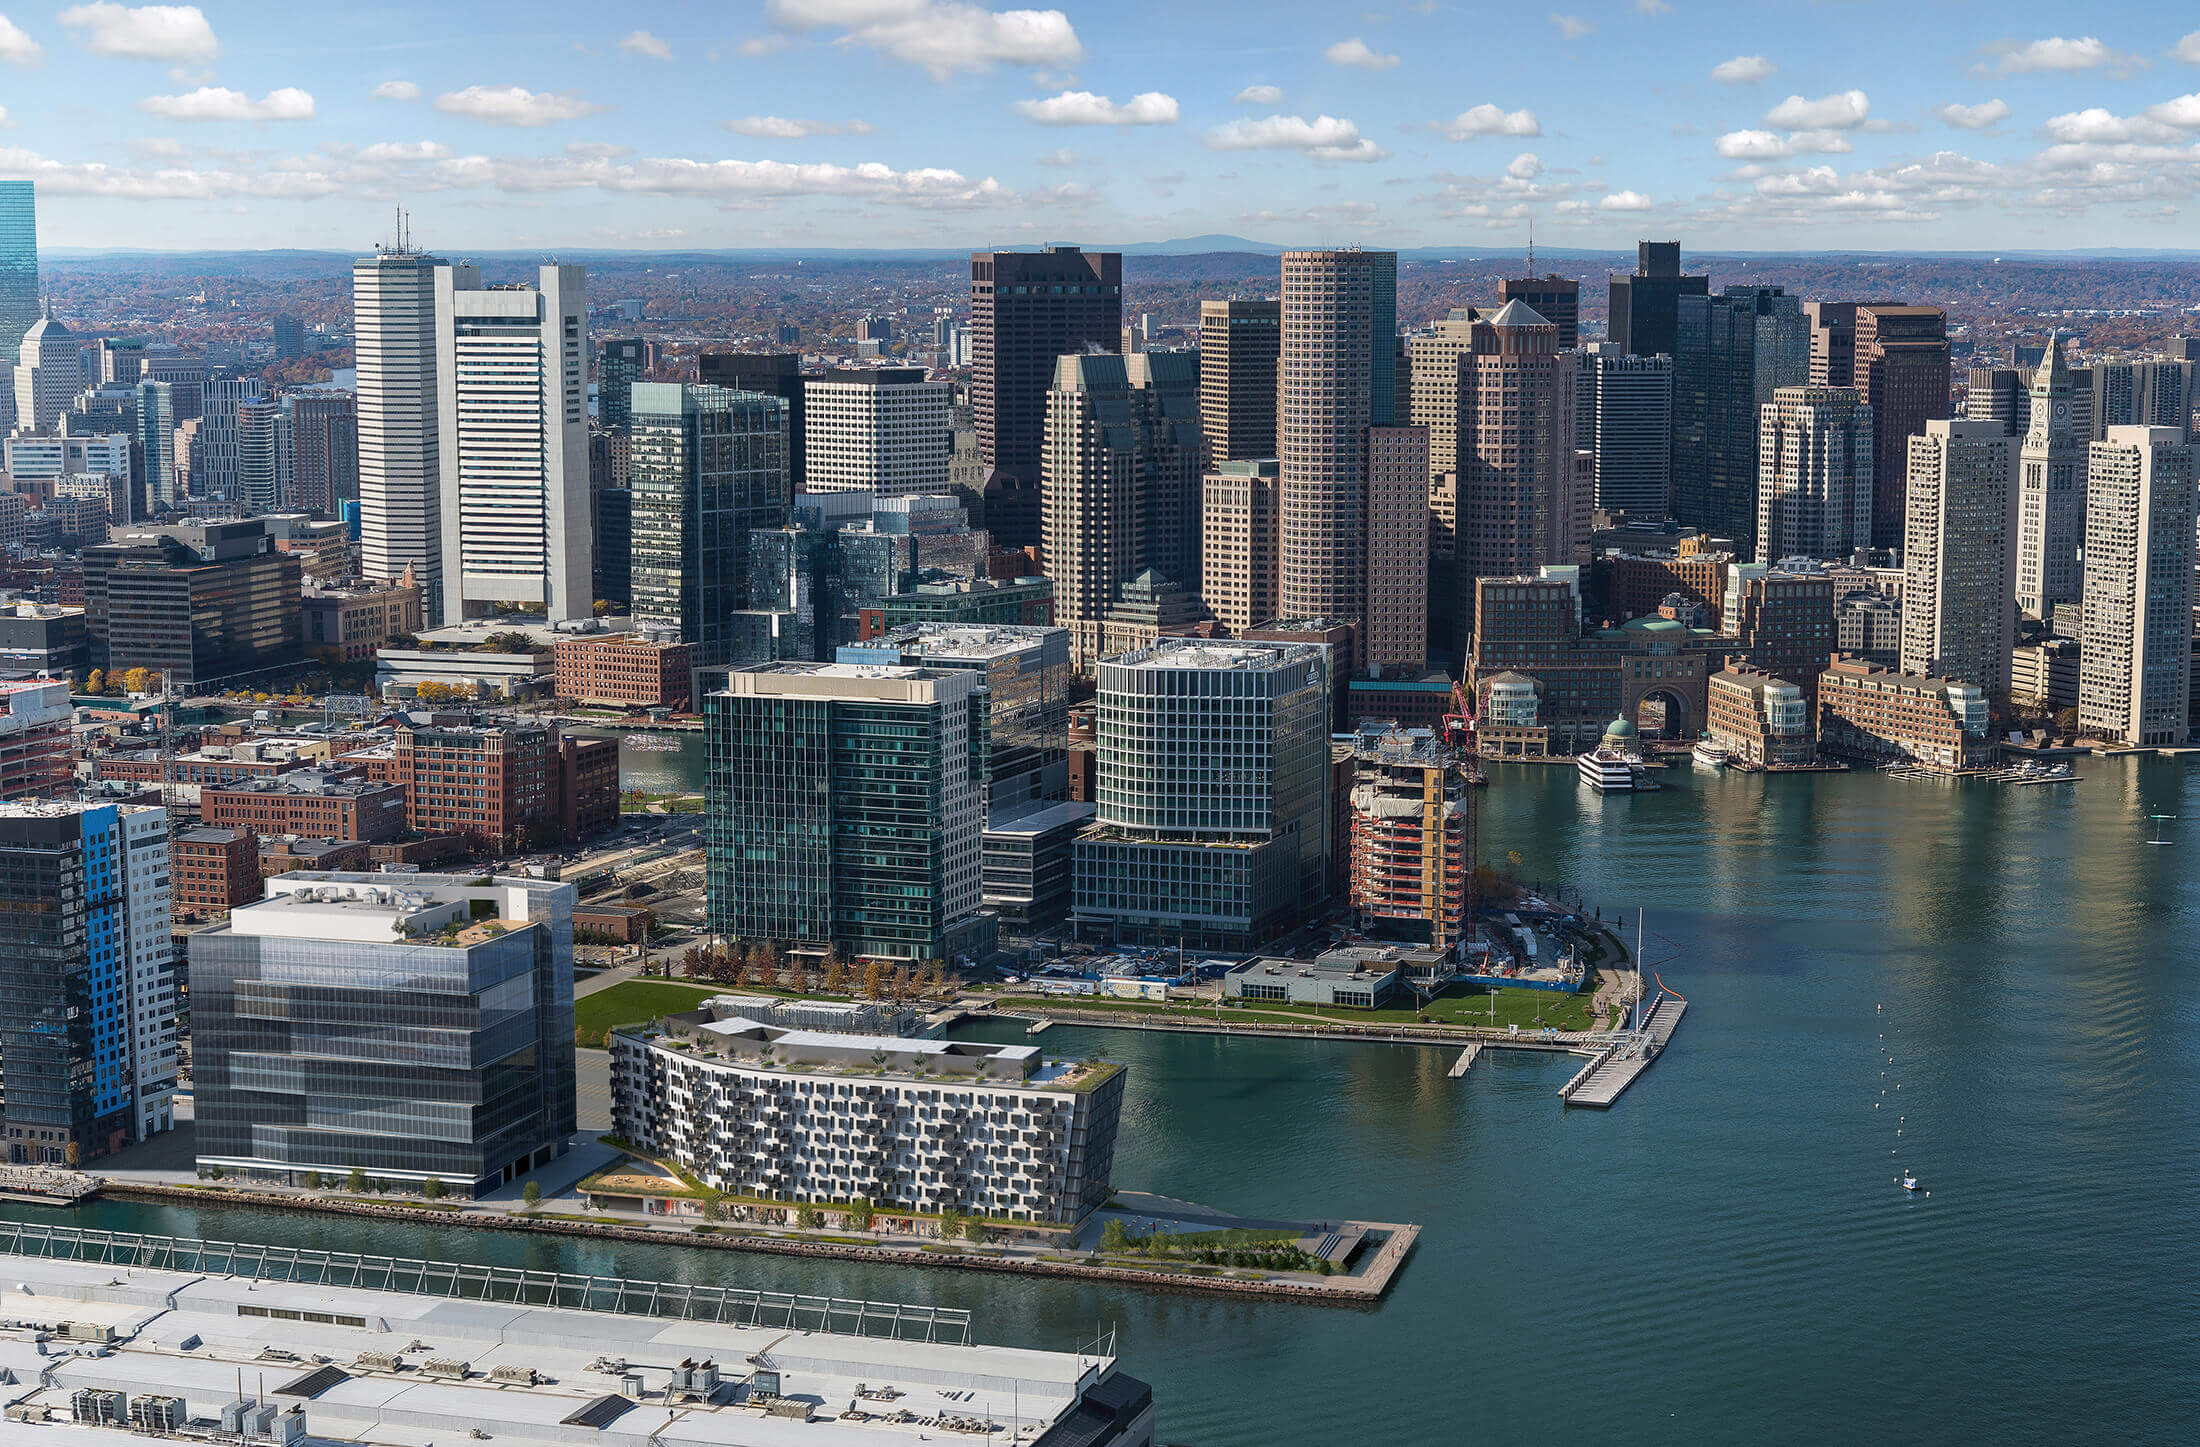 Boston's PIER 4 Aerial Photo by Tishman Speyer with Building Removal